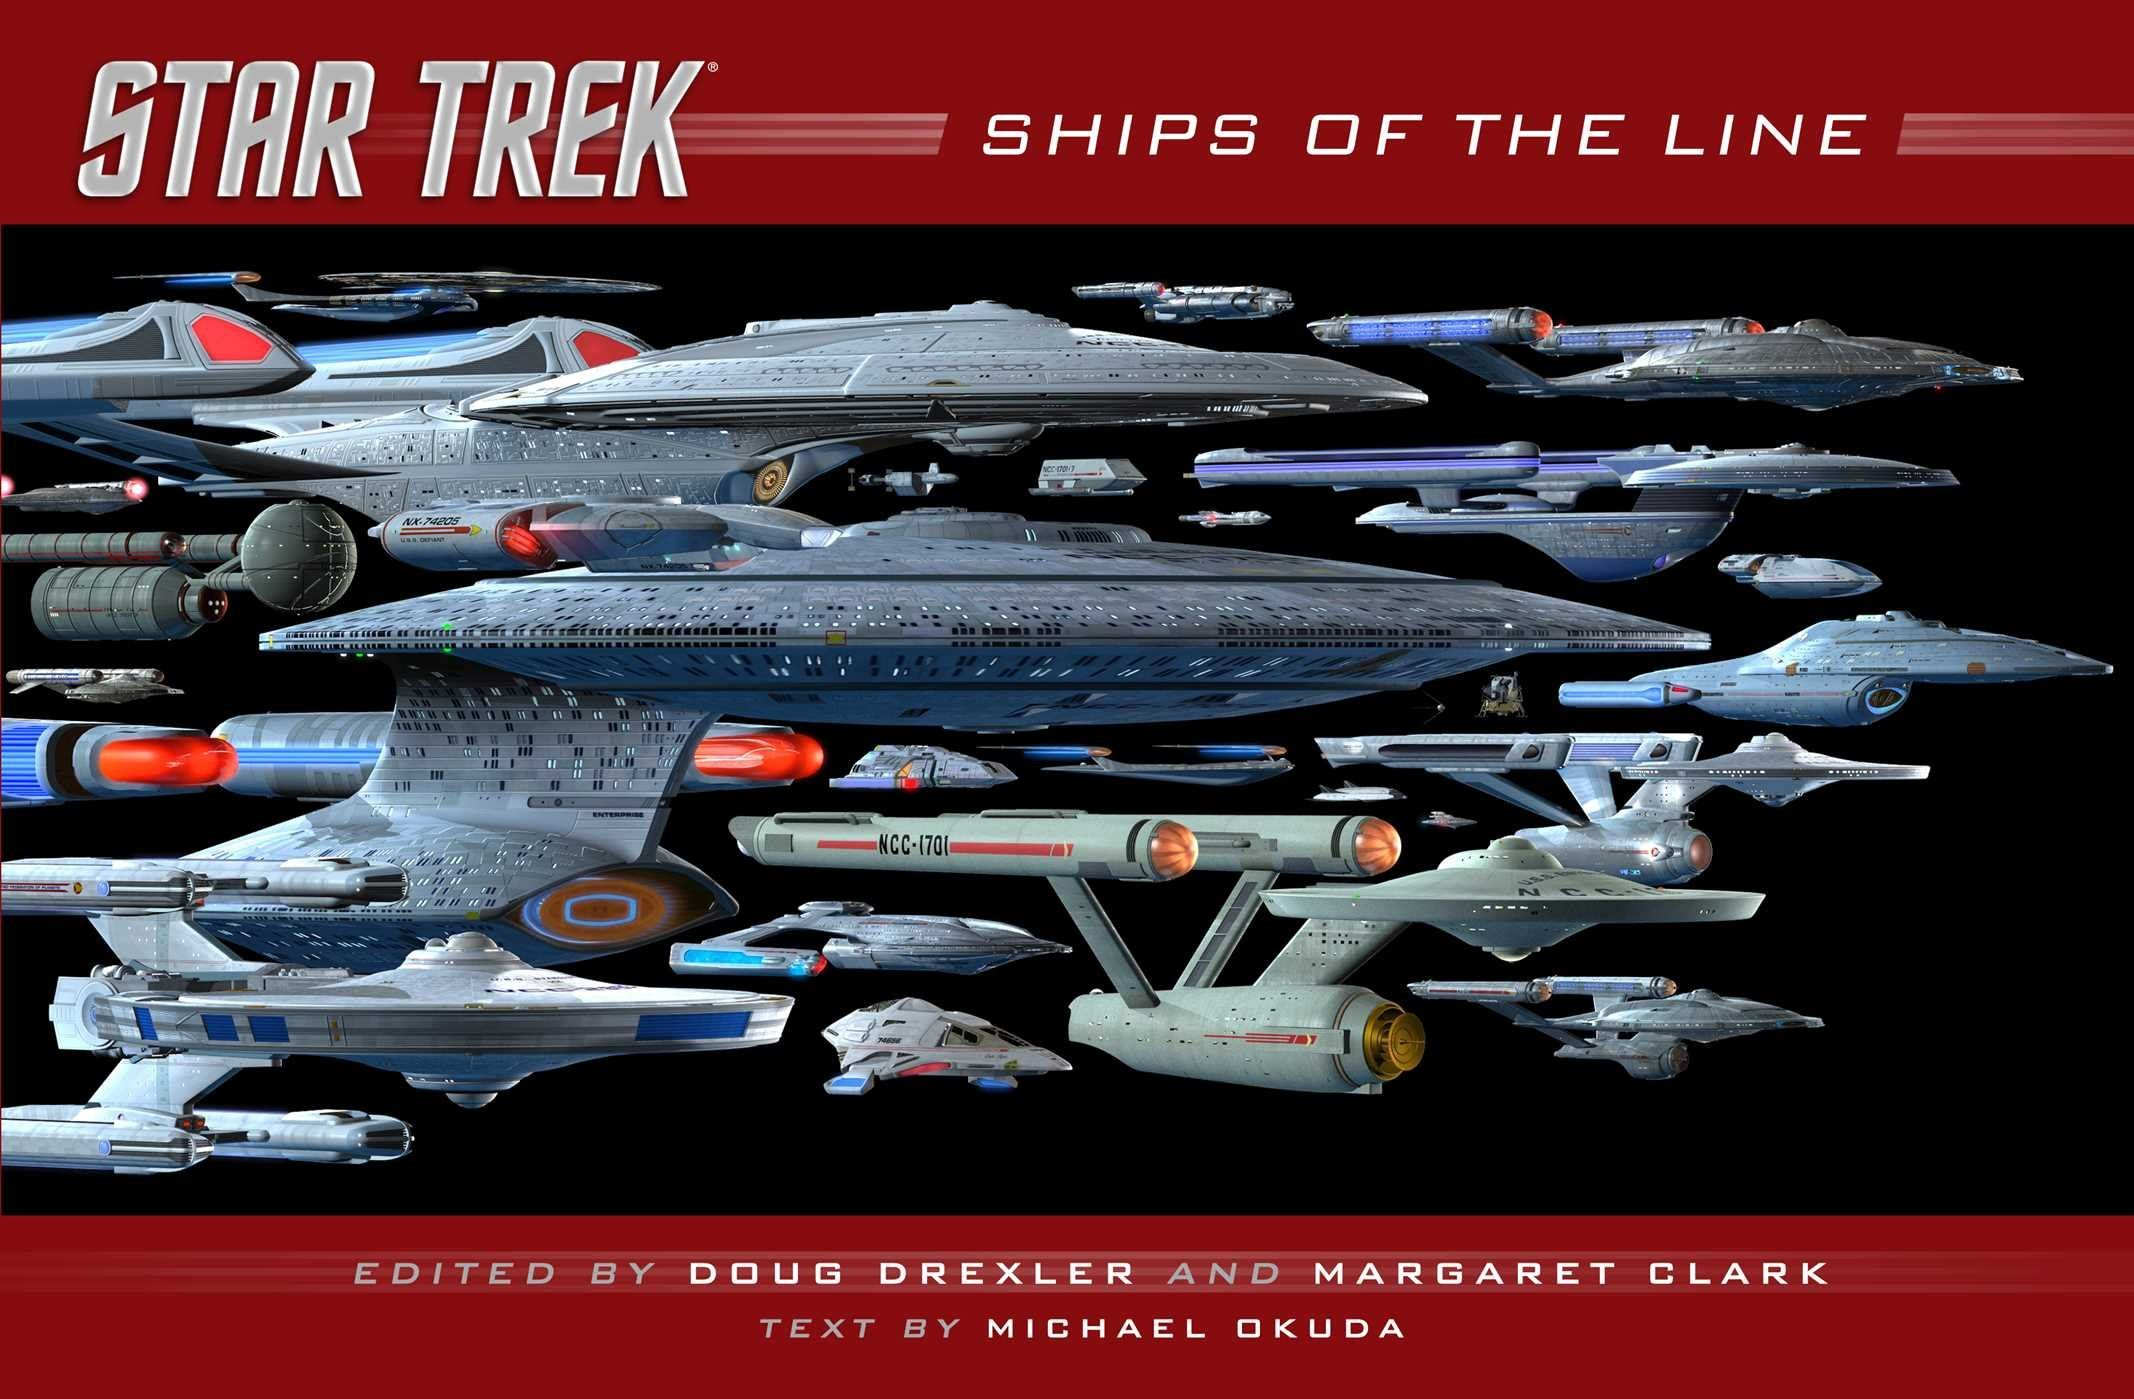 Star Trek: Ships of the Line: Doug Drexler, Margaret Clark: 9781476782584: Amazon.com: Books - See more at : http://www.amazon.com/gp/product/147678258X/ref=as_li_tl?ie=UTF8&camp=1789&creative=390957&creativeASIN=147678258X&linkCode=as2&tag=freeadvert003-20&linkId=LNBI33RQPGHGITLR